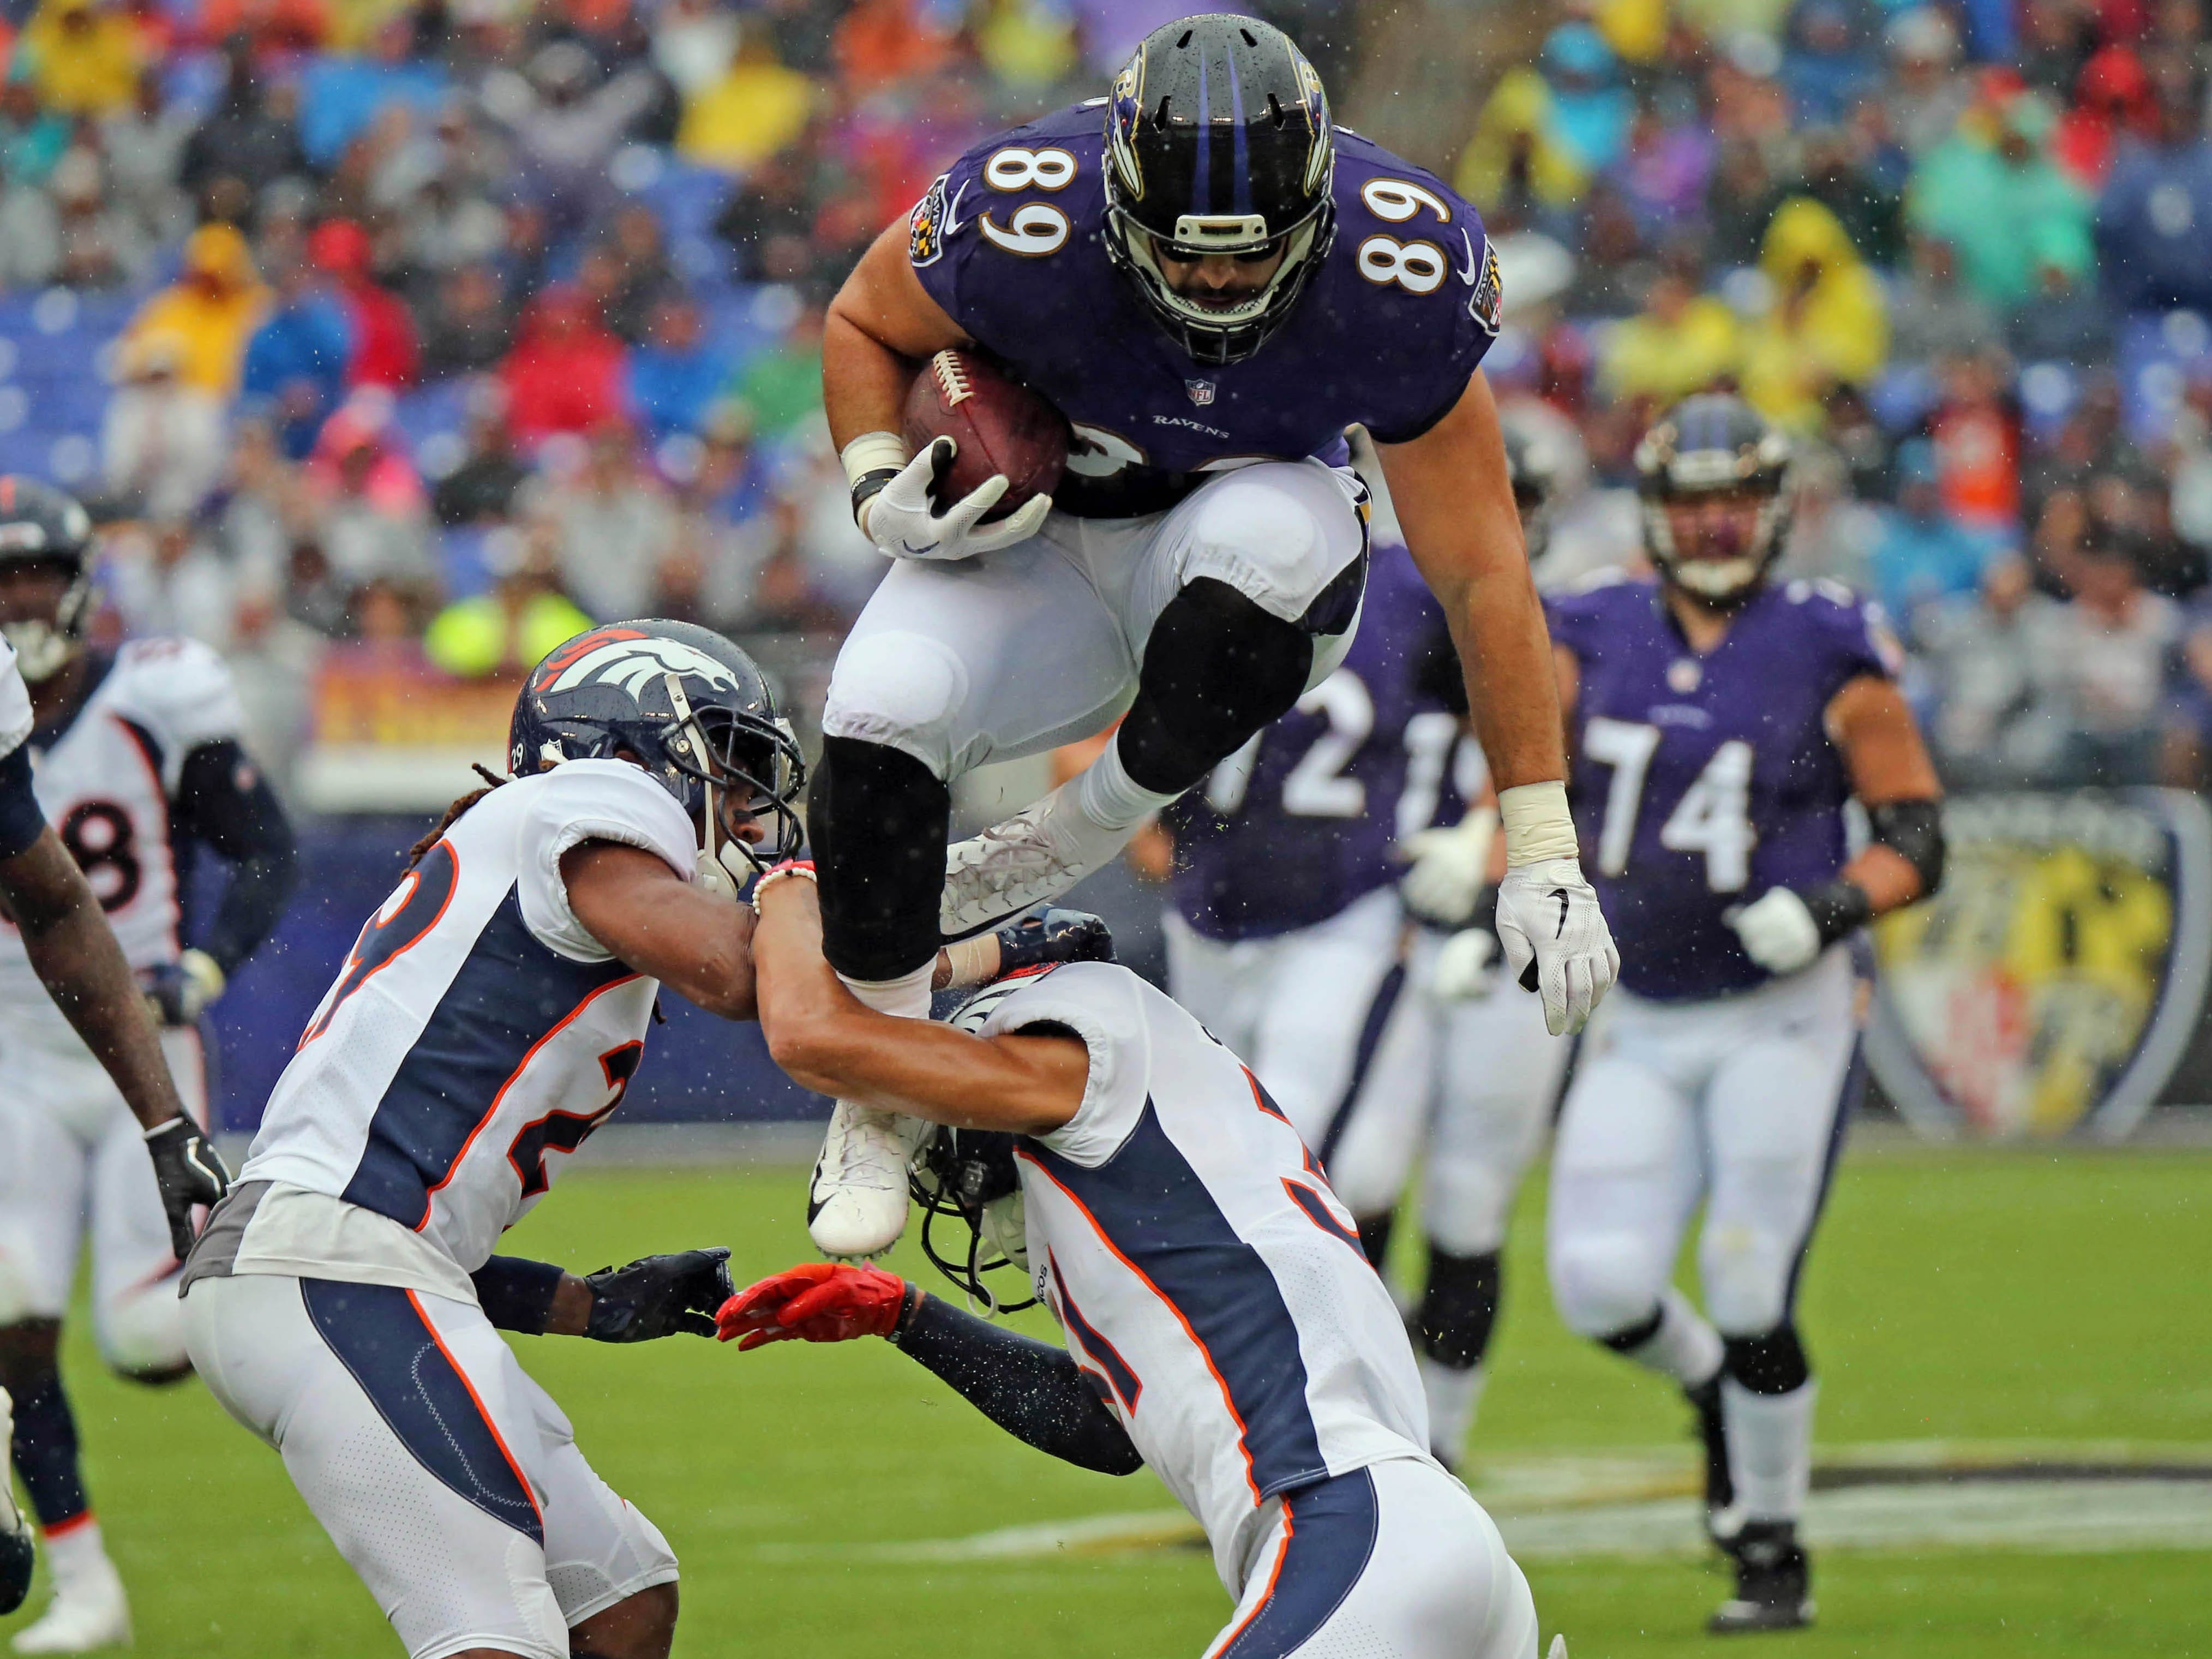 Baltimore Ravens tight end Mark Andrews leaps over Denver Broncos defenders following his catch at M&T Bank Stadium.